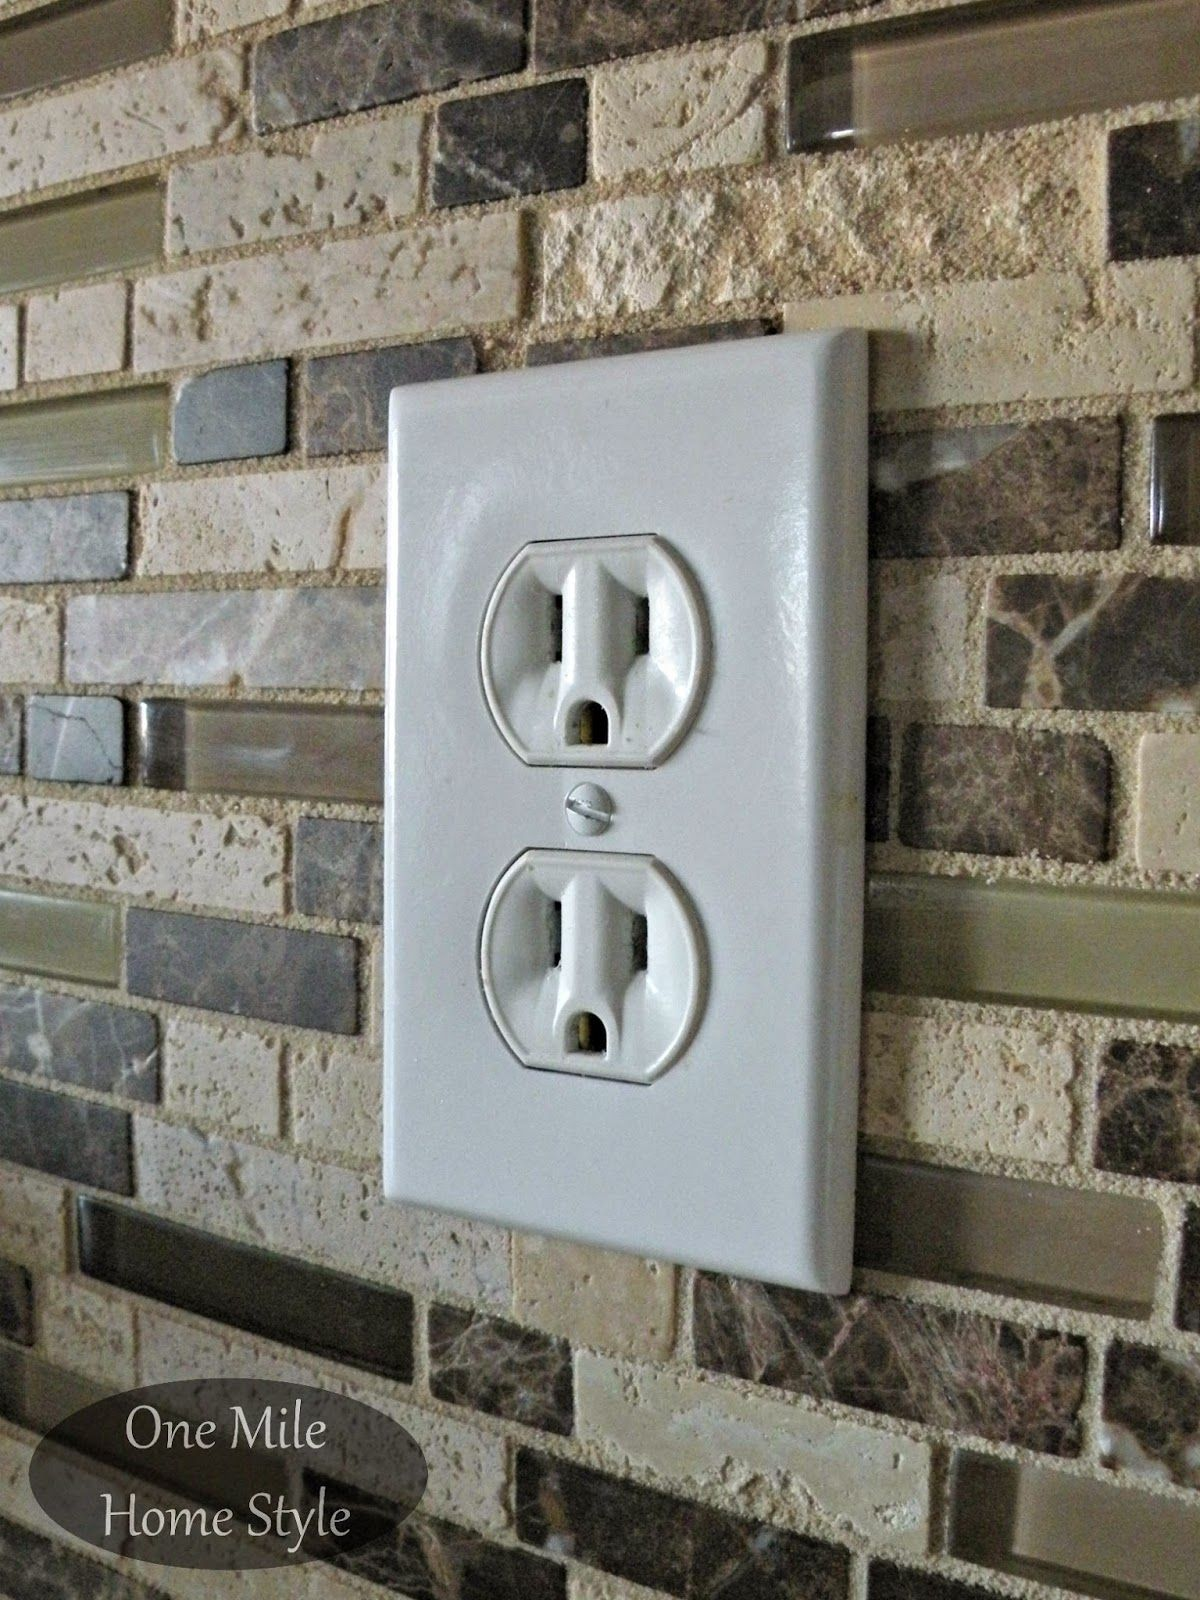 How To Adjust Outlets After Tiling | Electrical outlets, Outlets and ...